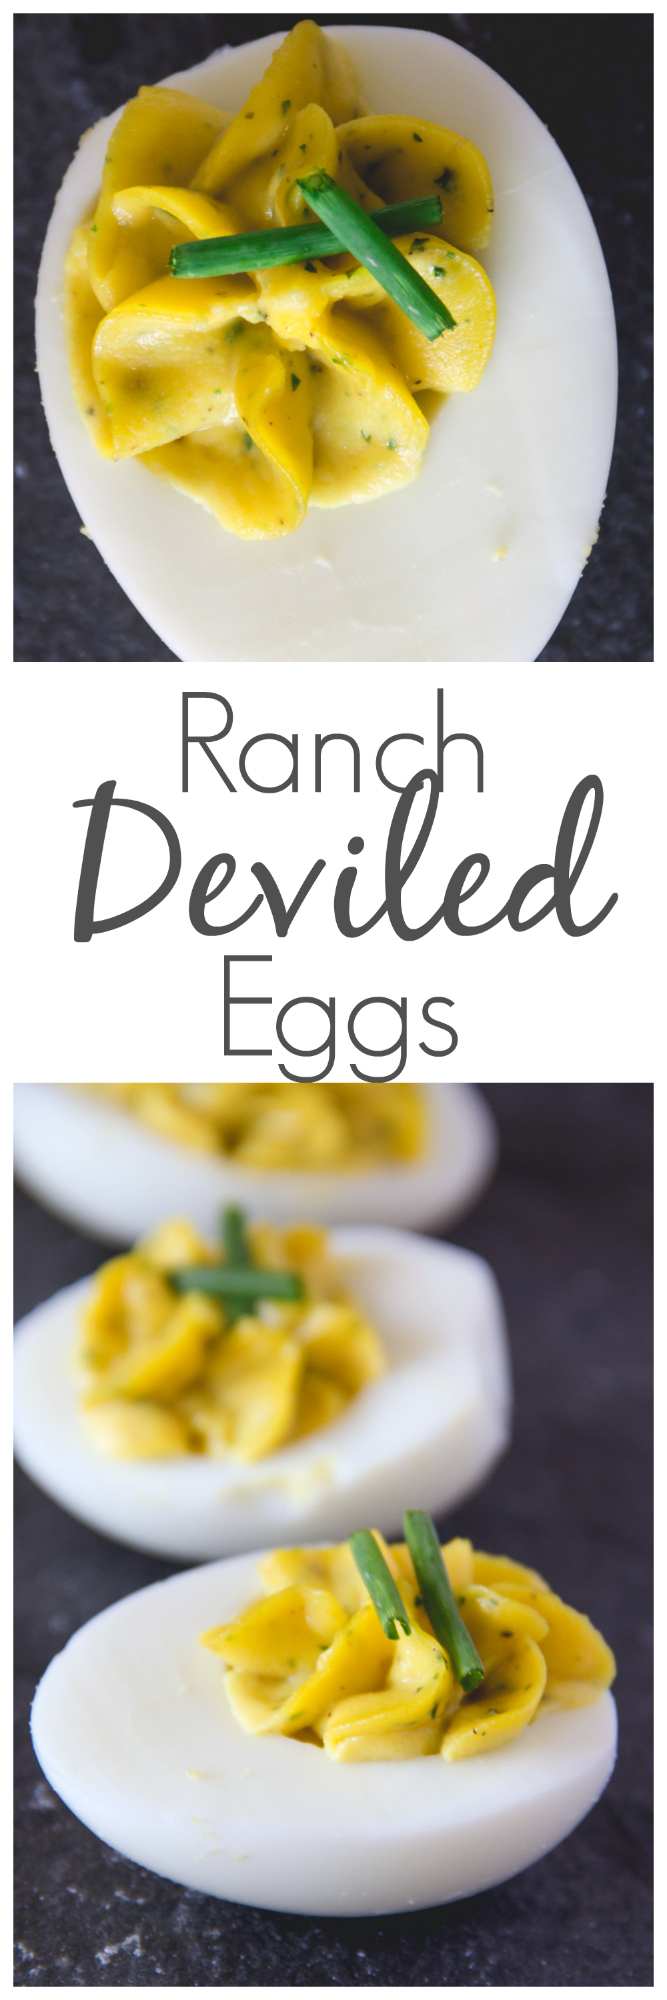 Add these Ranch Deviled Eggs to your holiday spread. Your family will thank you! They are filled with all the flavors you love plus a hint of ranch seasoning.